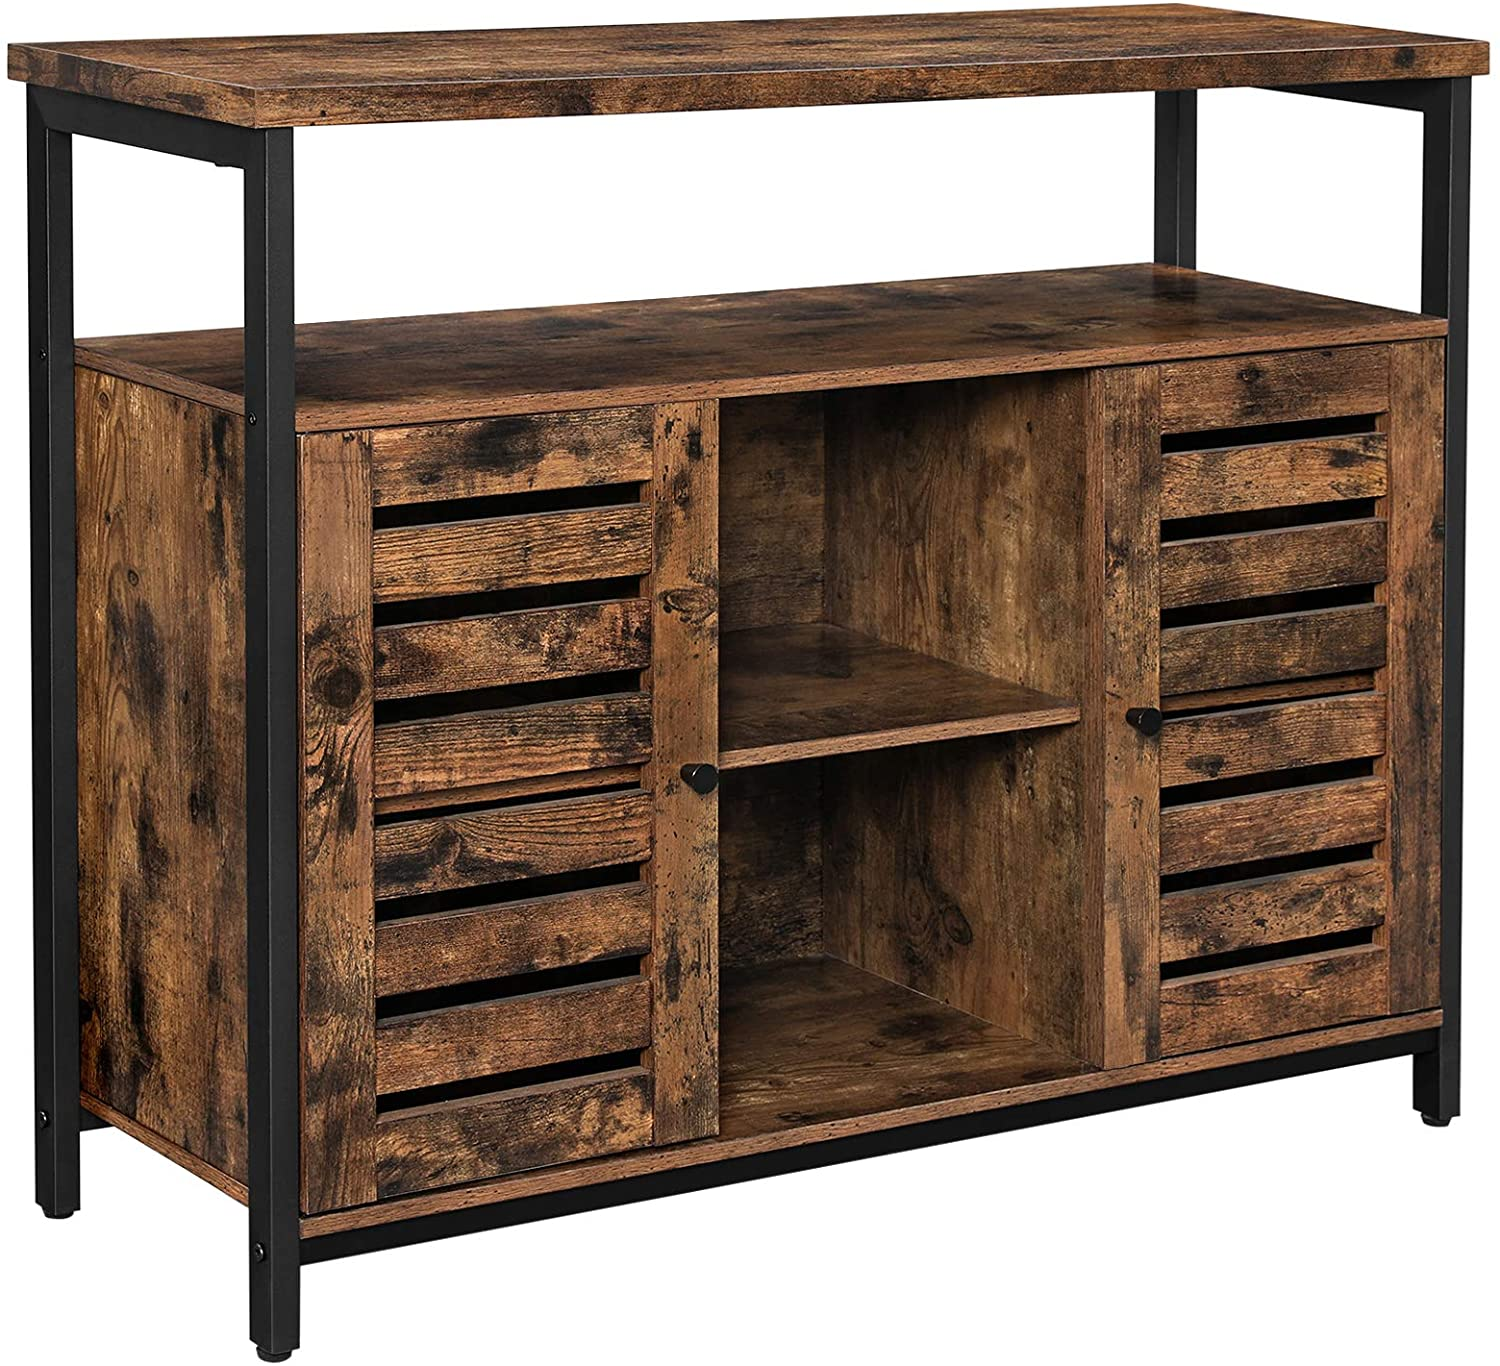 Enjoy fast, free nationwide shipping!  Family owned and operated, HawkinsWoodshop.com is your one stop shop for affordable furniture.  Shop HawkinsWoodshop.com for solid wood & metal modern, traditional, contemporary, industrial, custom, rustic, and farmhouse furniture including our Louvered Door Storage Cabinet with Cupboard.